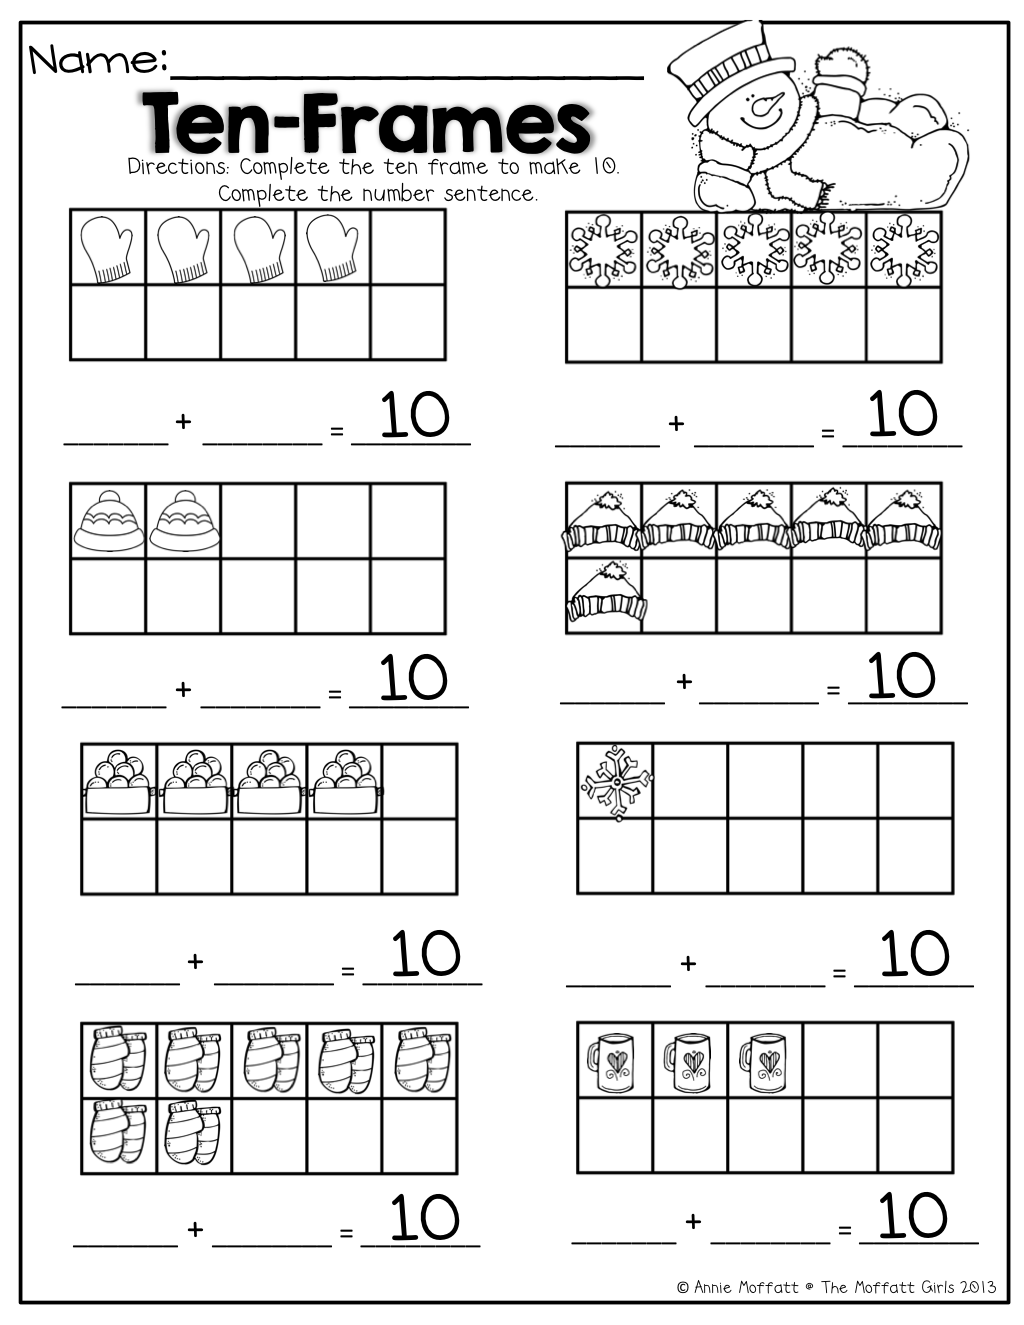 Ten Frames Math For Winter Different Ways To Make 10